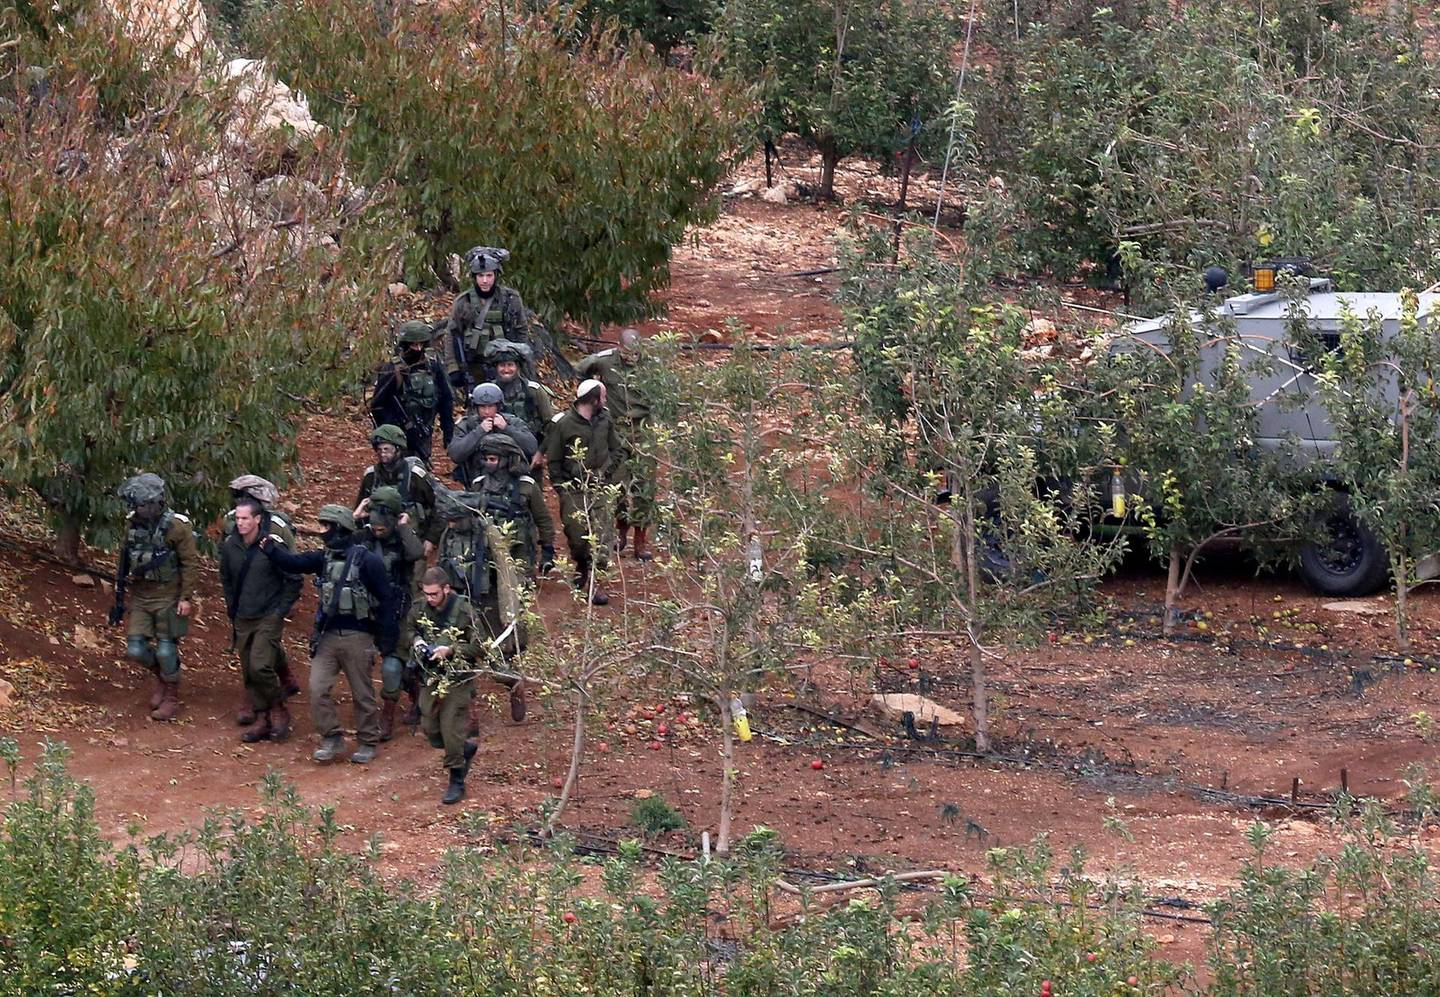 A picture taken on December 5, 2018 from the souther Lebanese village of Kfar Kila shows Israeli soldiers walking near the site of an Israeli excavation site for reported Hezbollah-dug tunnels along the Lebanon-Israel border. Israel had announced on December 4 that it had discovered Hezbollah tunnels infiltrating its territory from Lebanon and launched an operation to destroy them. / AFP / Mahmoud ZAYYAT